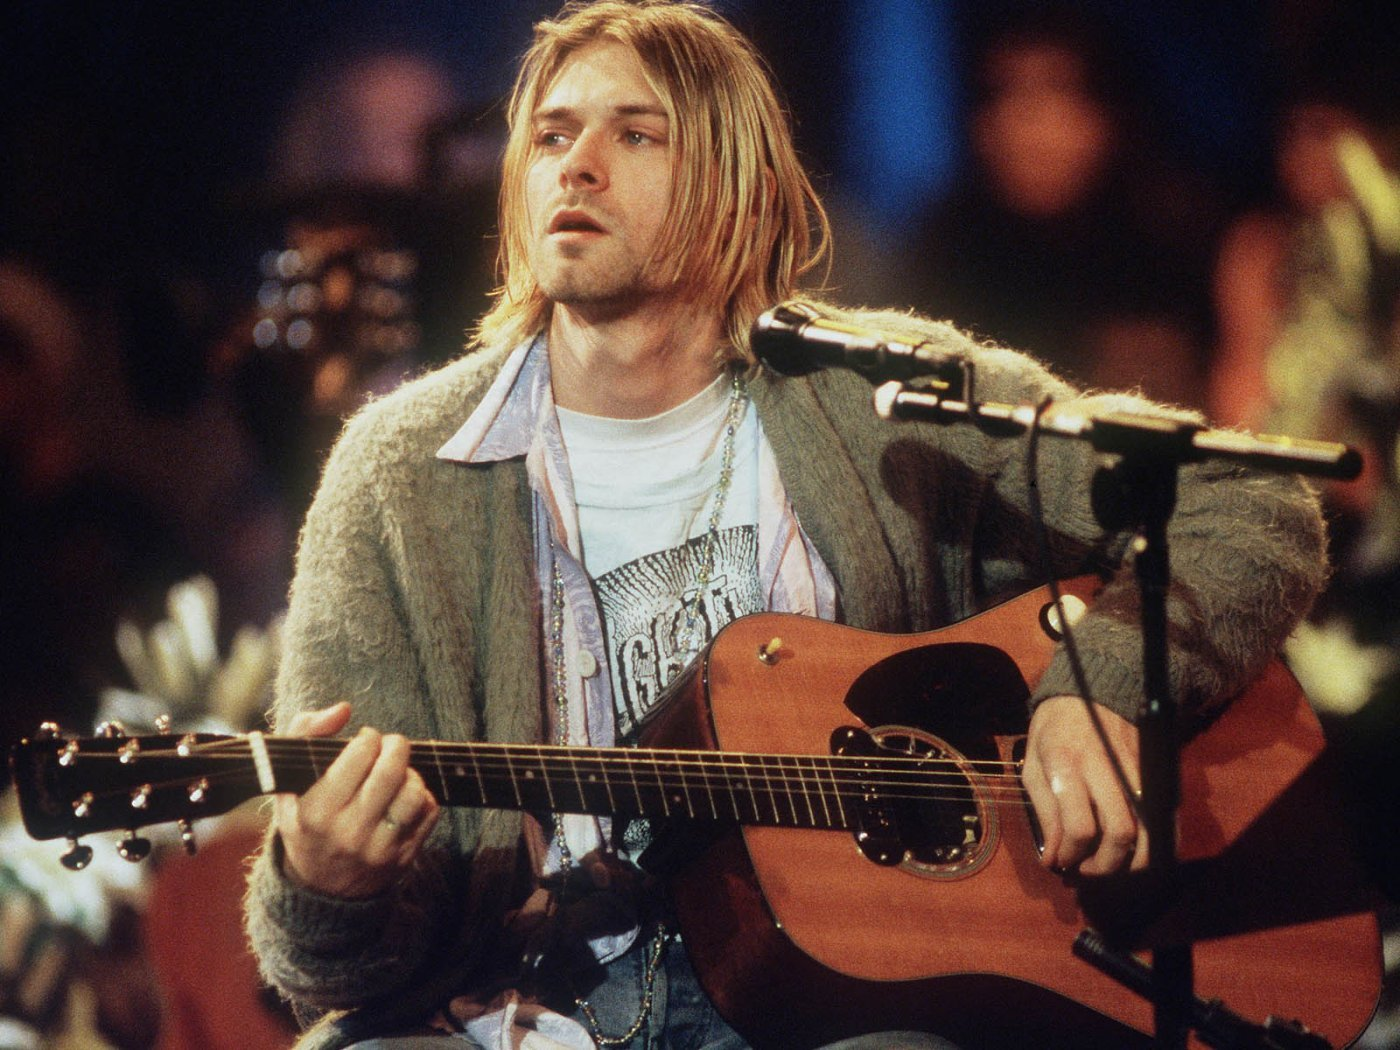 Kurt Cobain HD 1400x1050 Wallpapers 1400x1050 Wallpapers Pictures 1400x1050